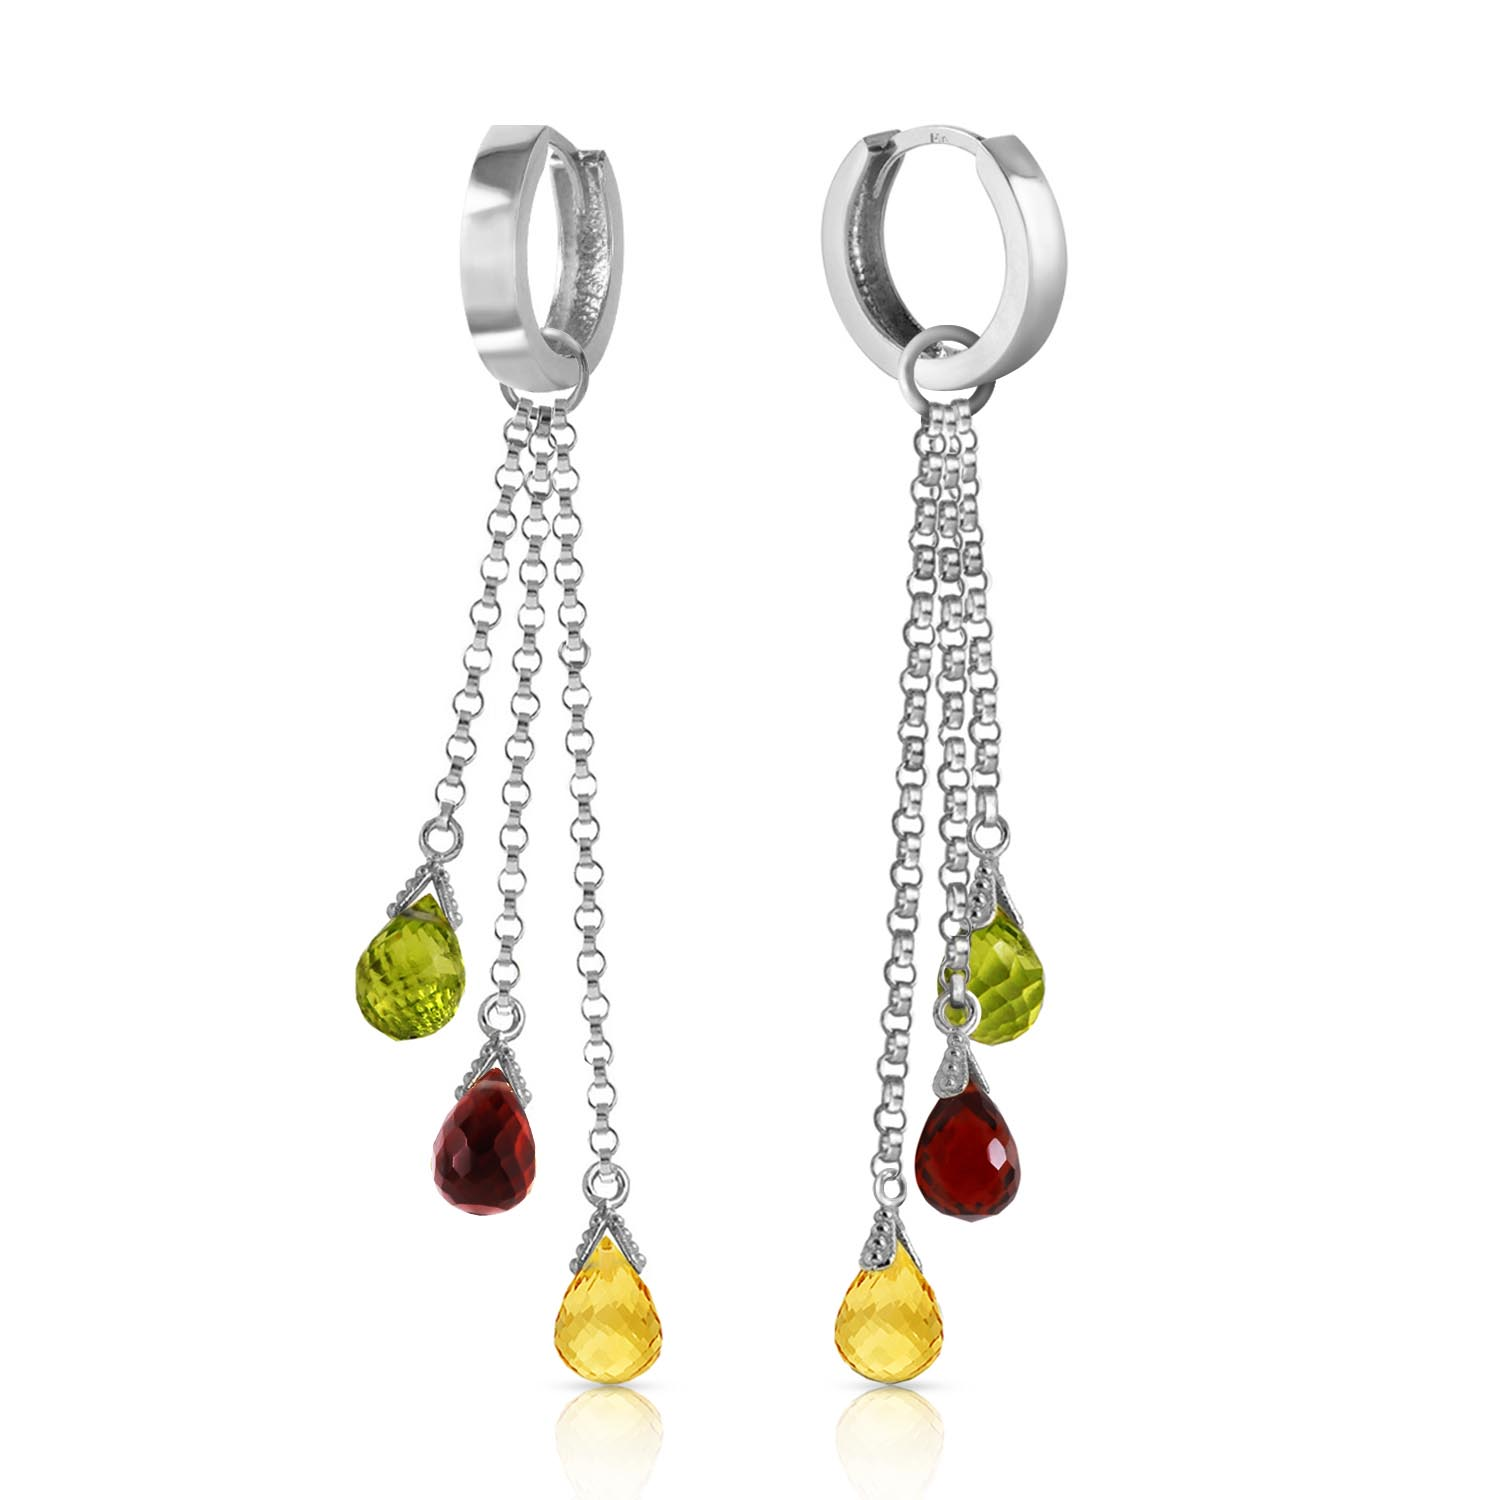 Gemstone Trilogy Droplet Briolette Earrings 2.1ctw in 9ct White Gold